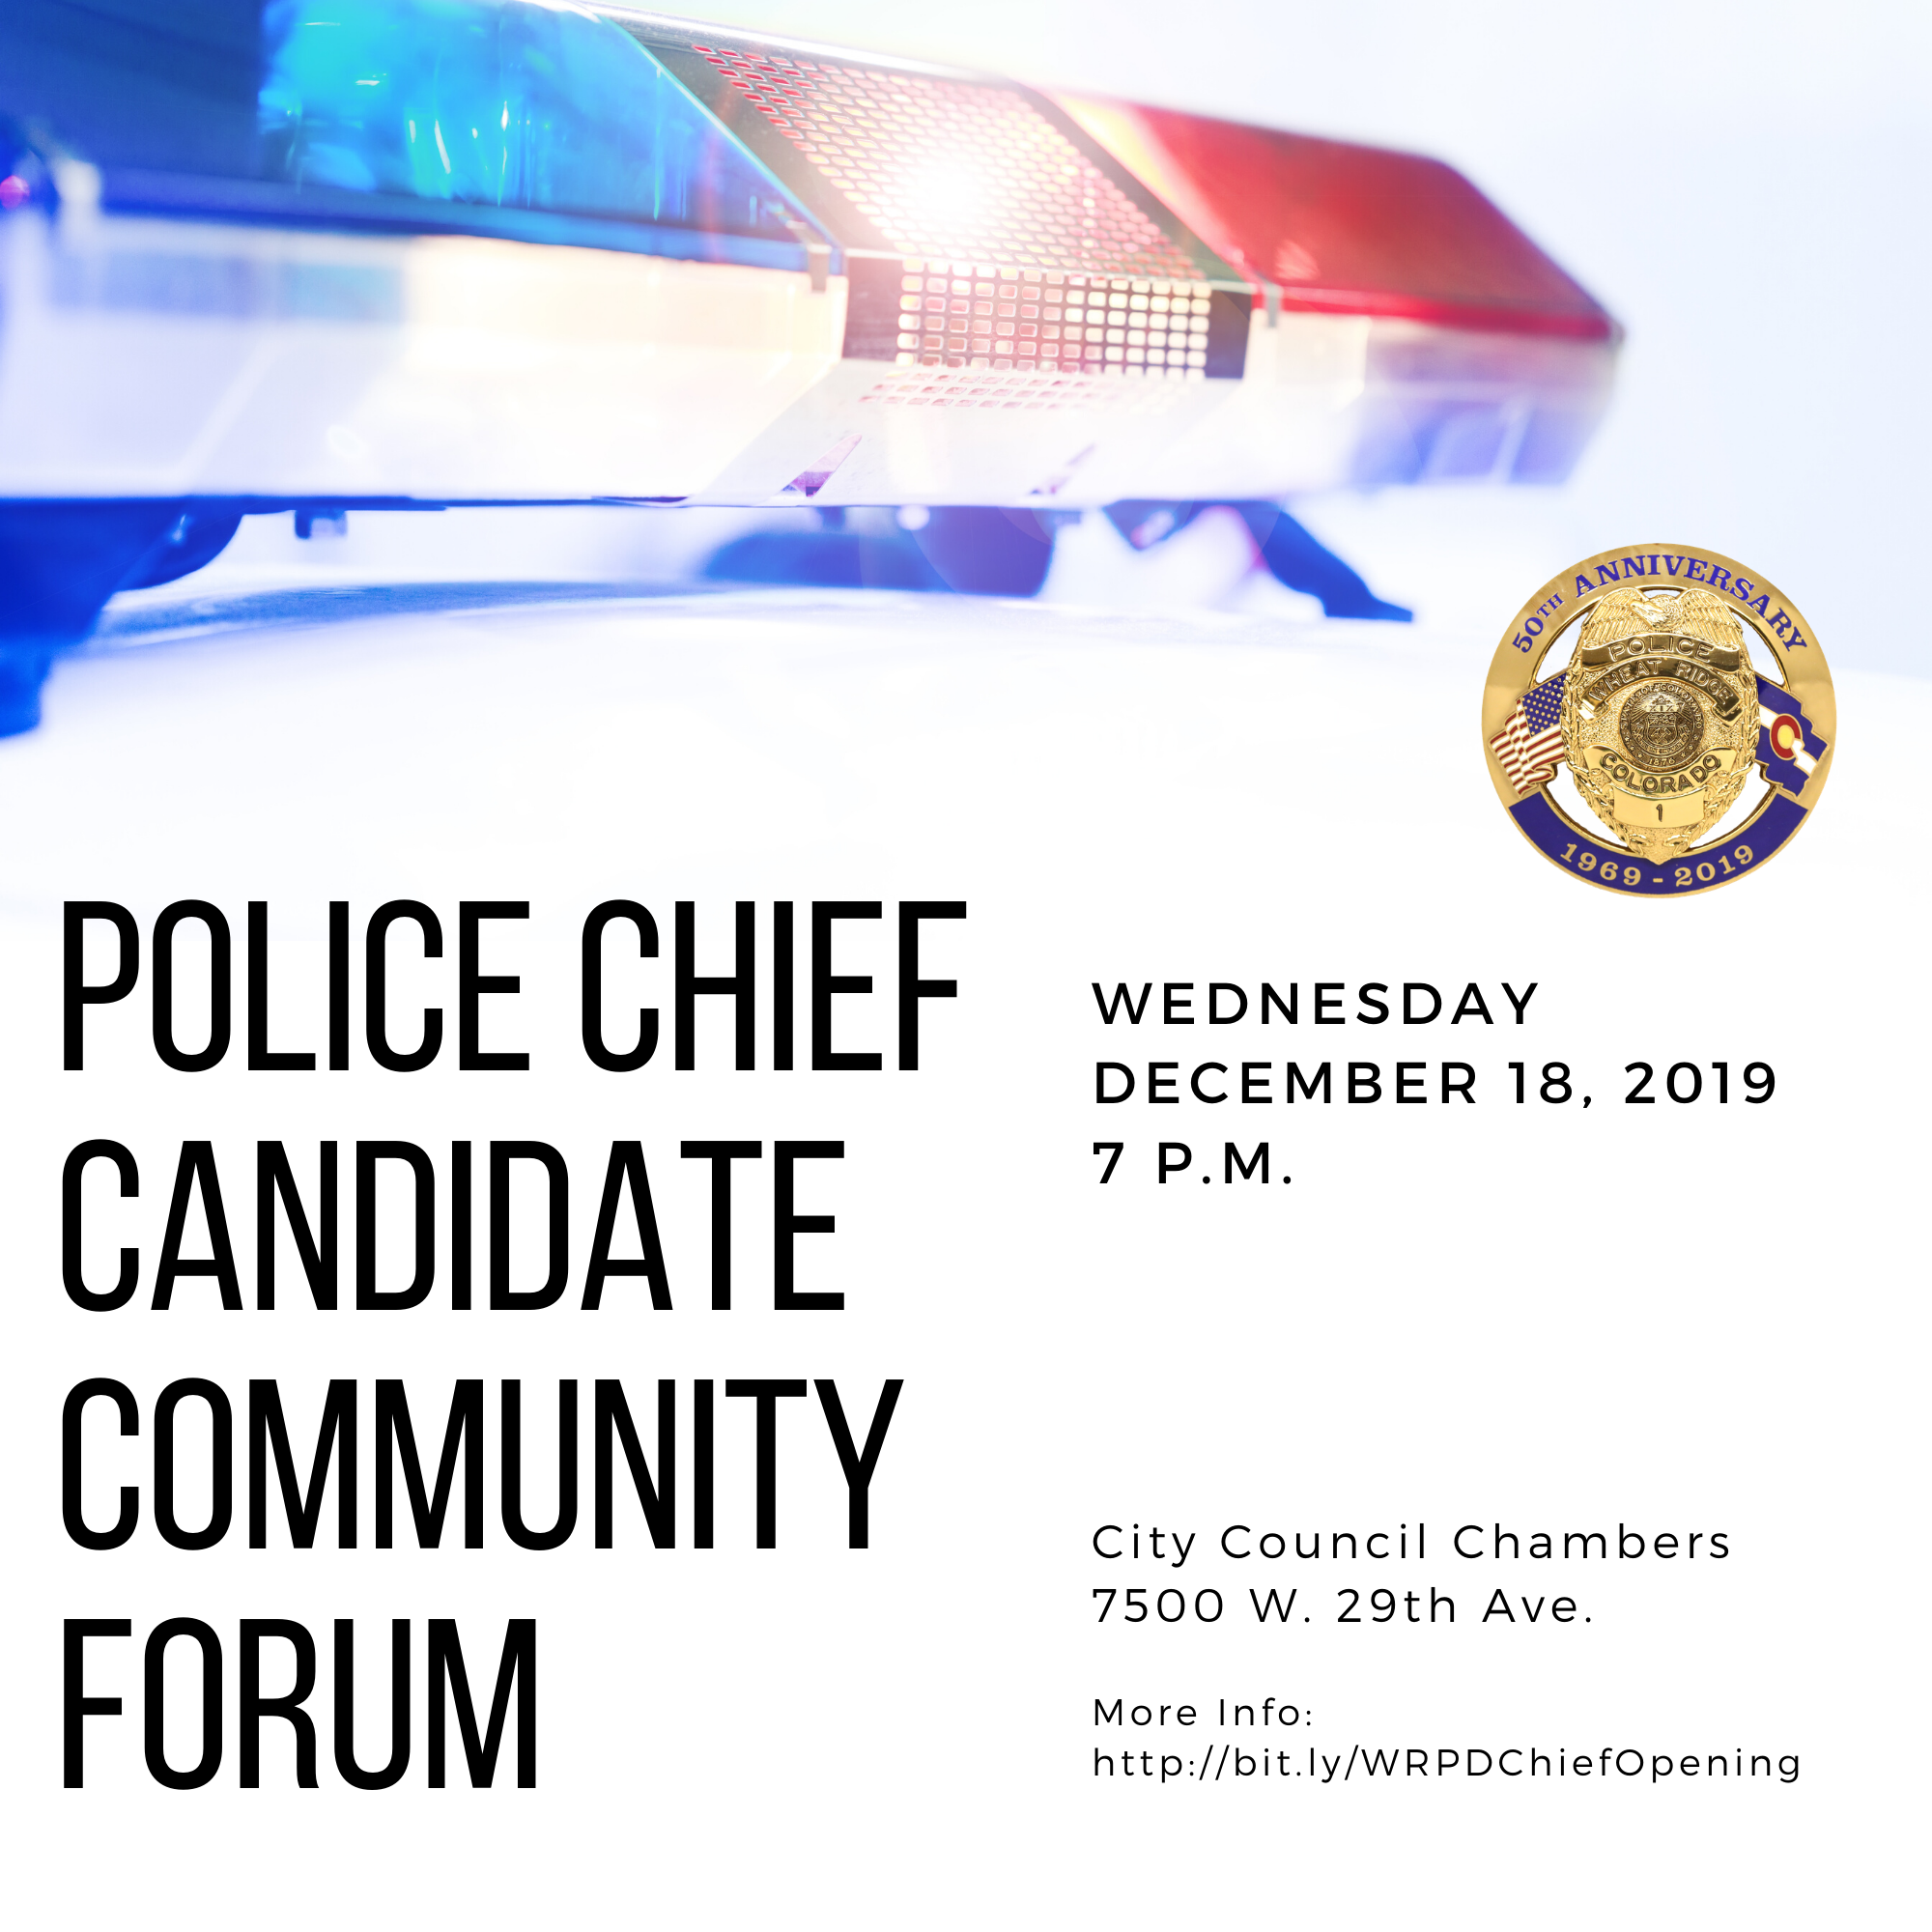 Police Chief Community Forum